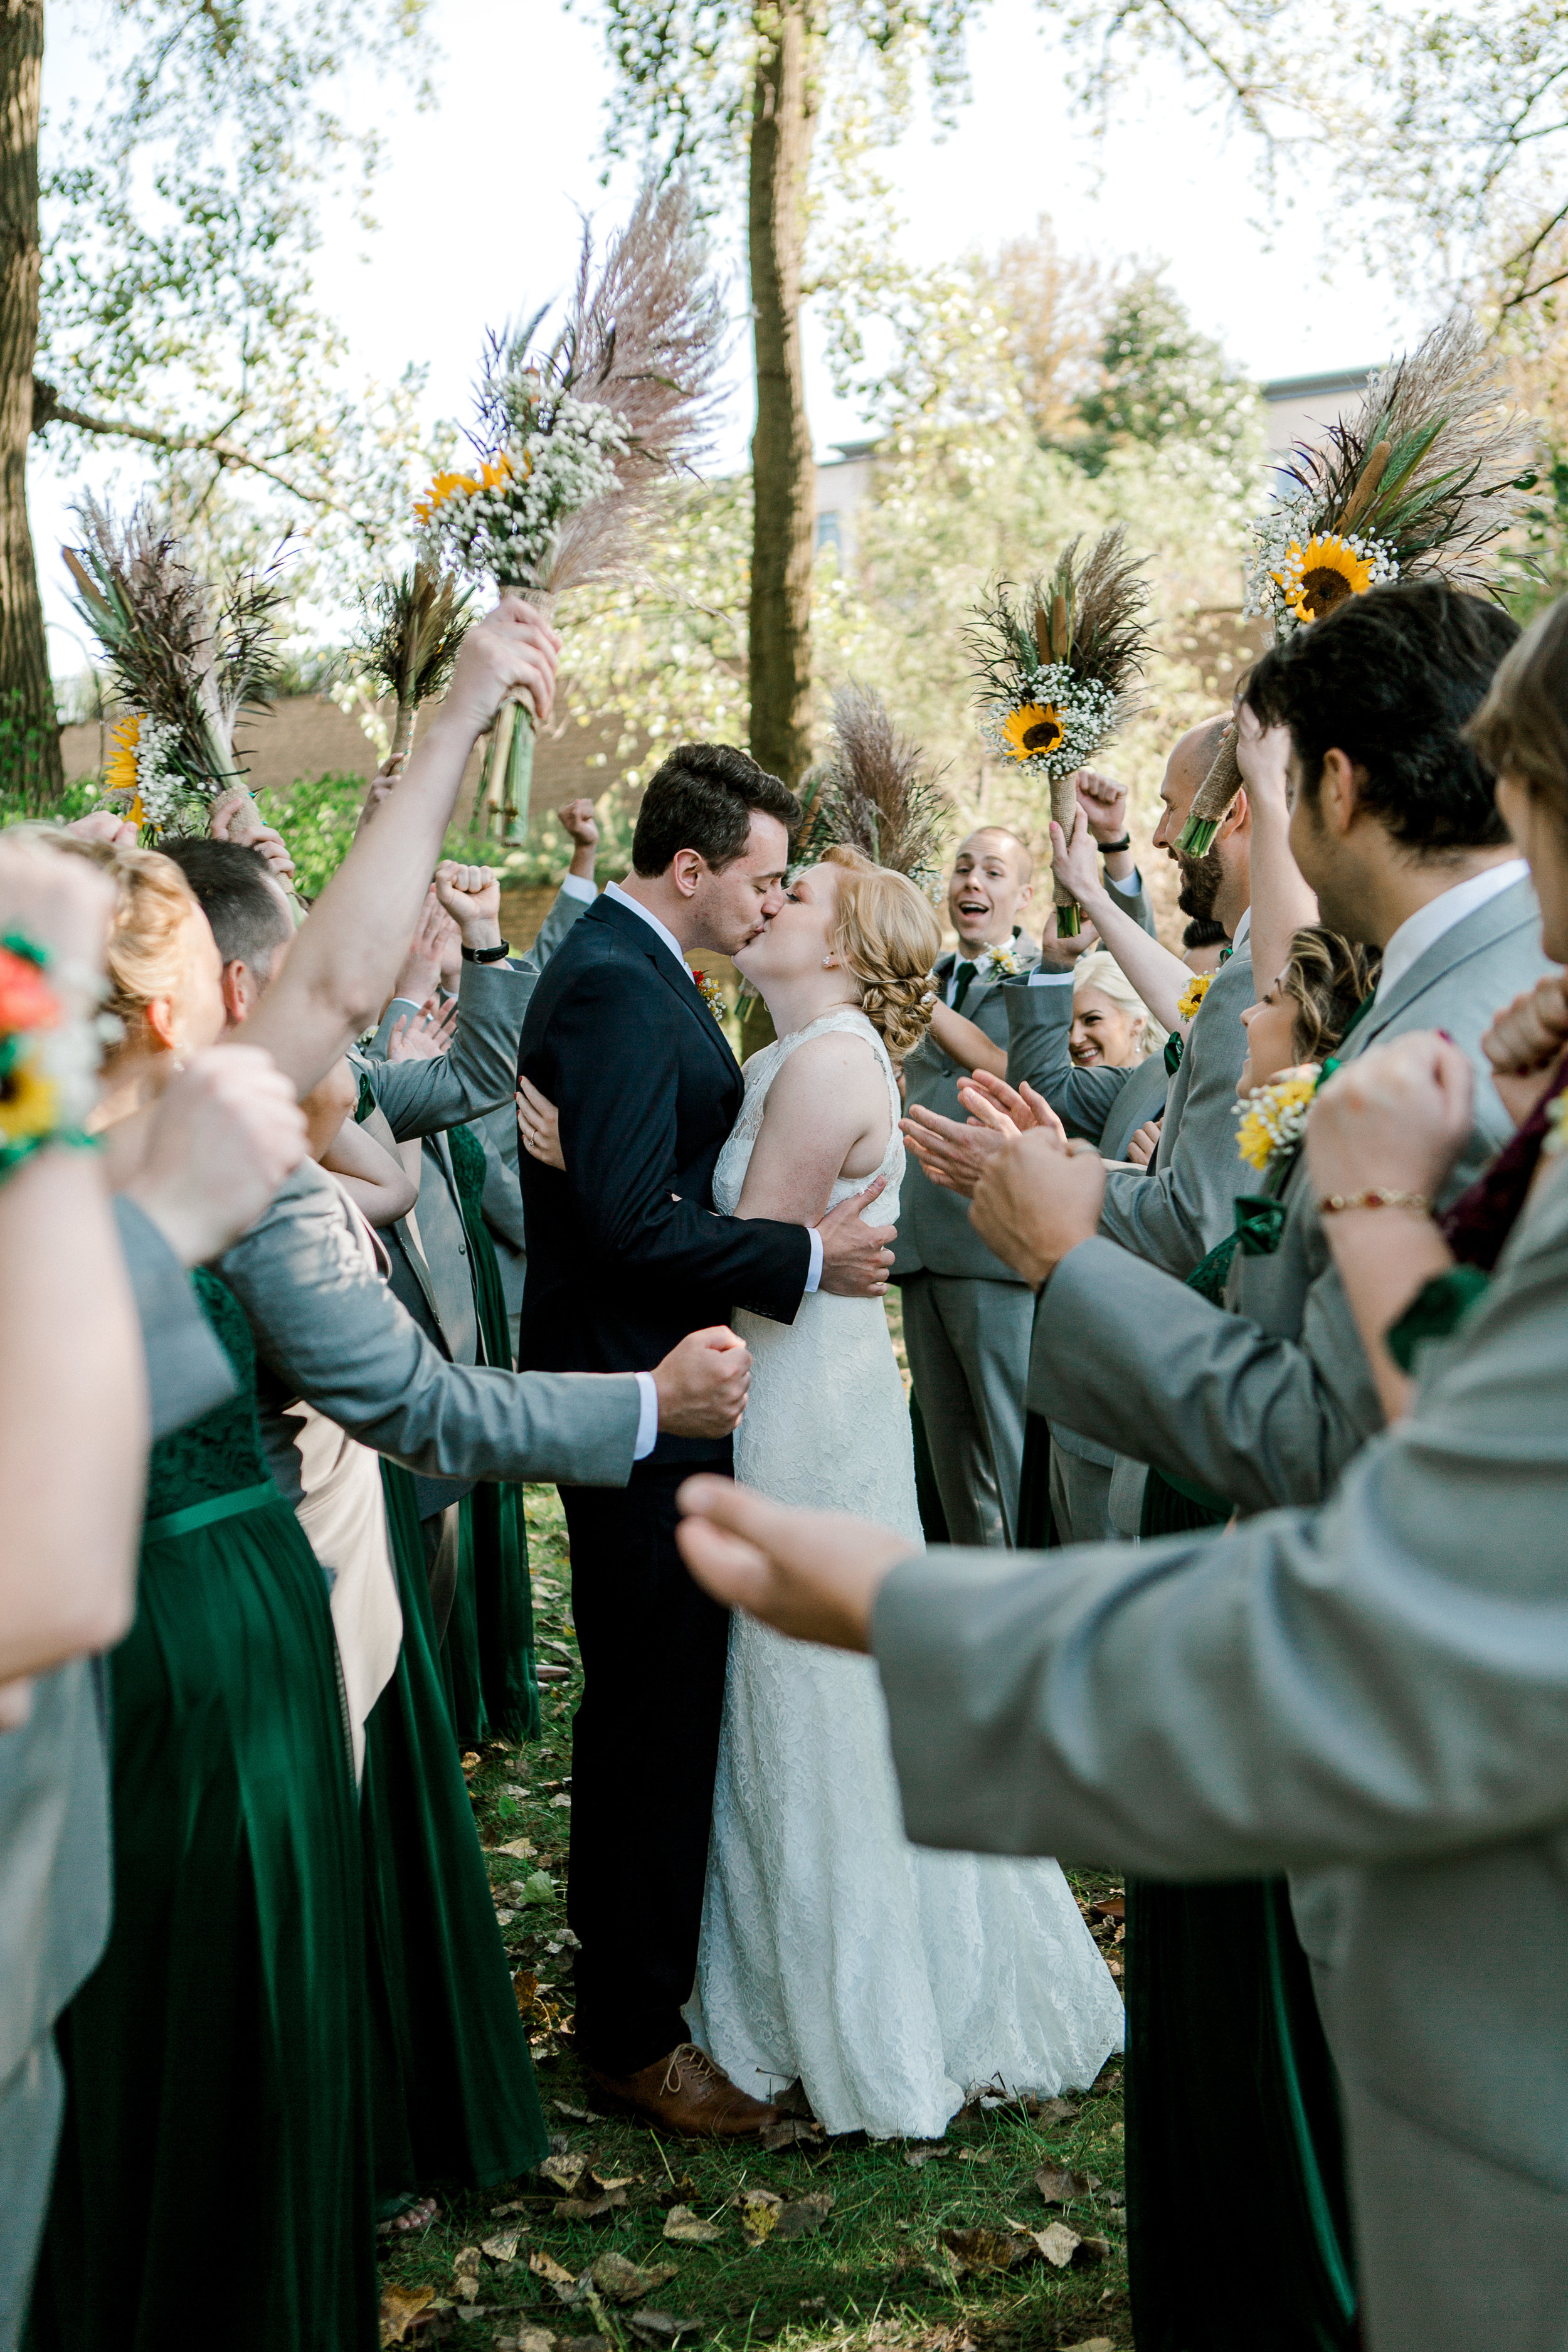 Lauren Baker Photography affordable wedding photography Minnesota  photographer